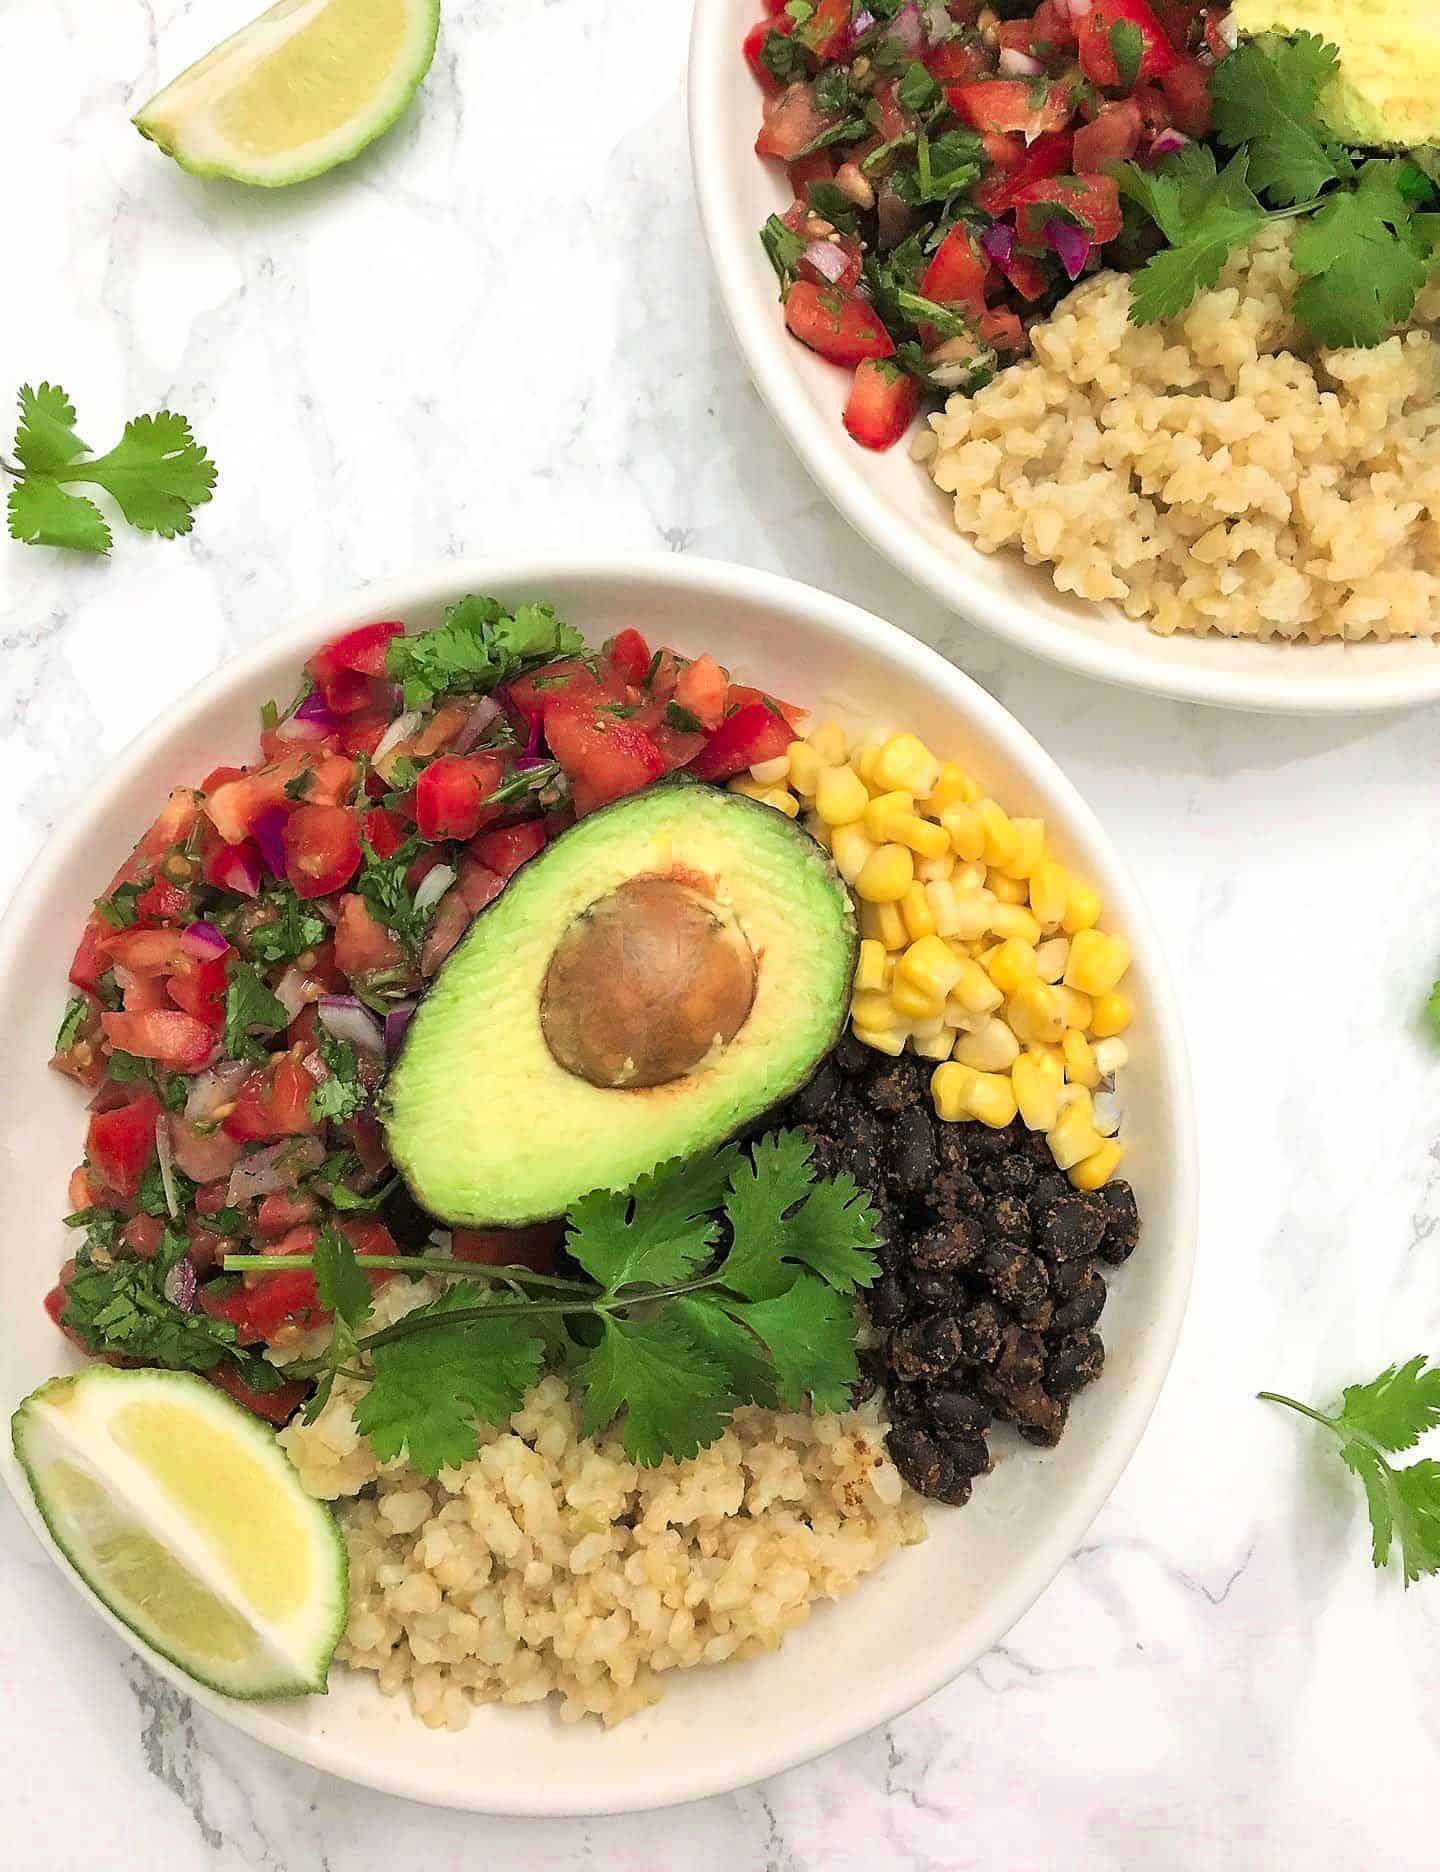 Two bowls with rice, tomato salad, corn, black beans, avocado and lime.